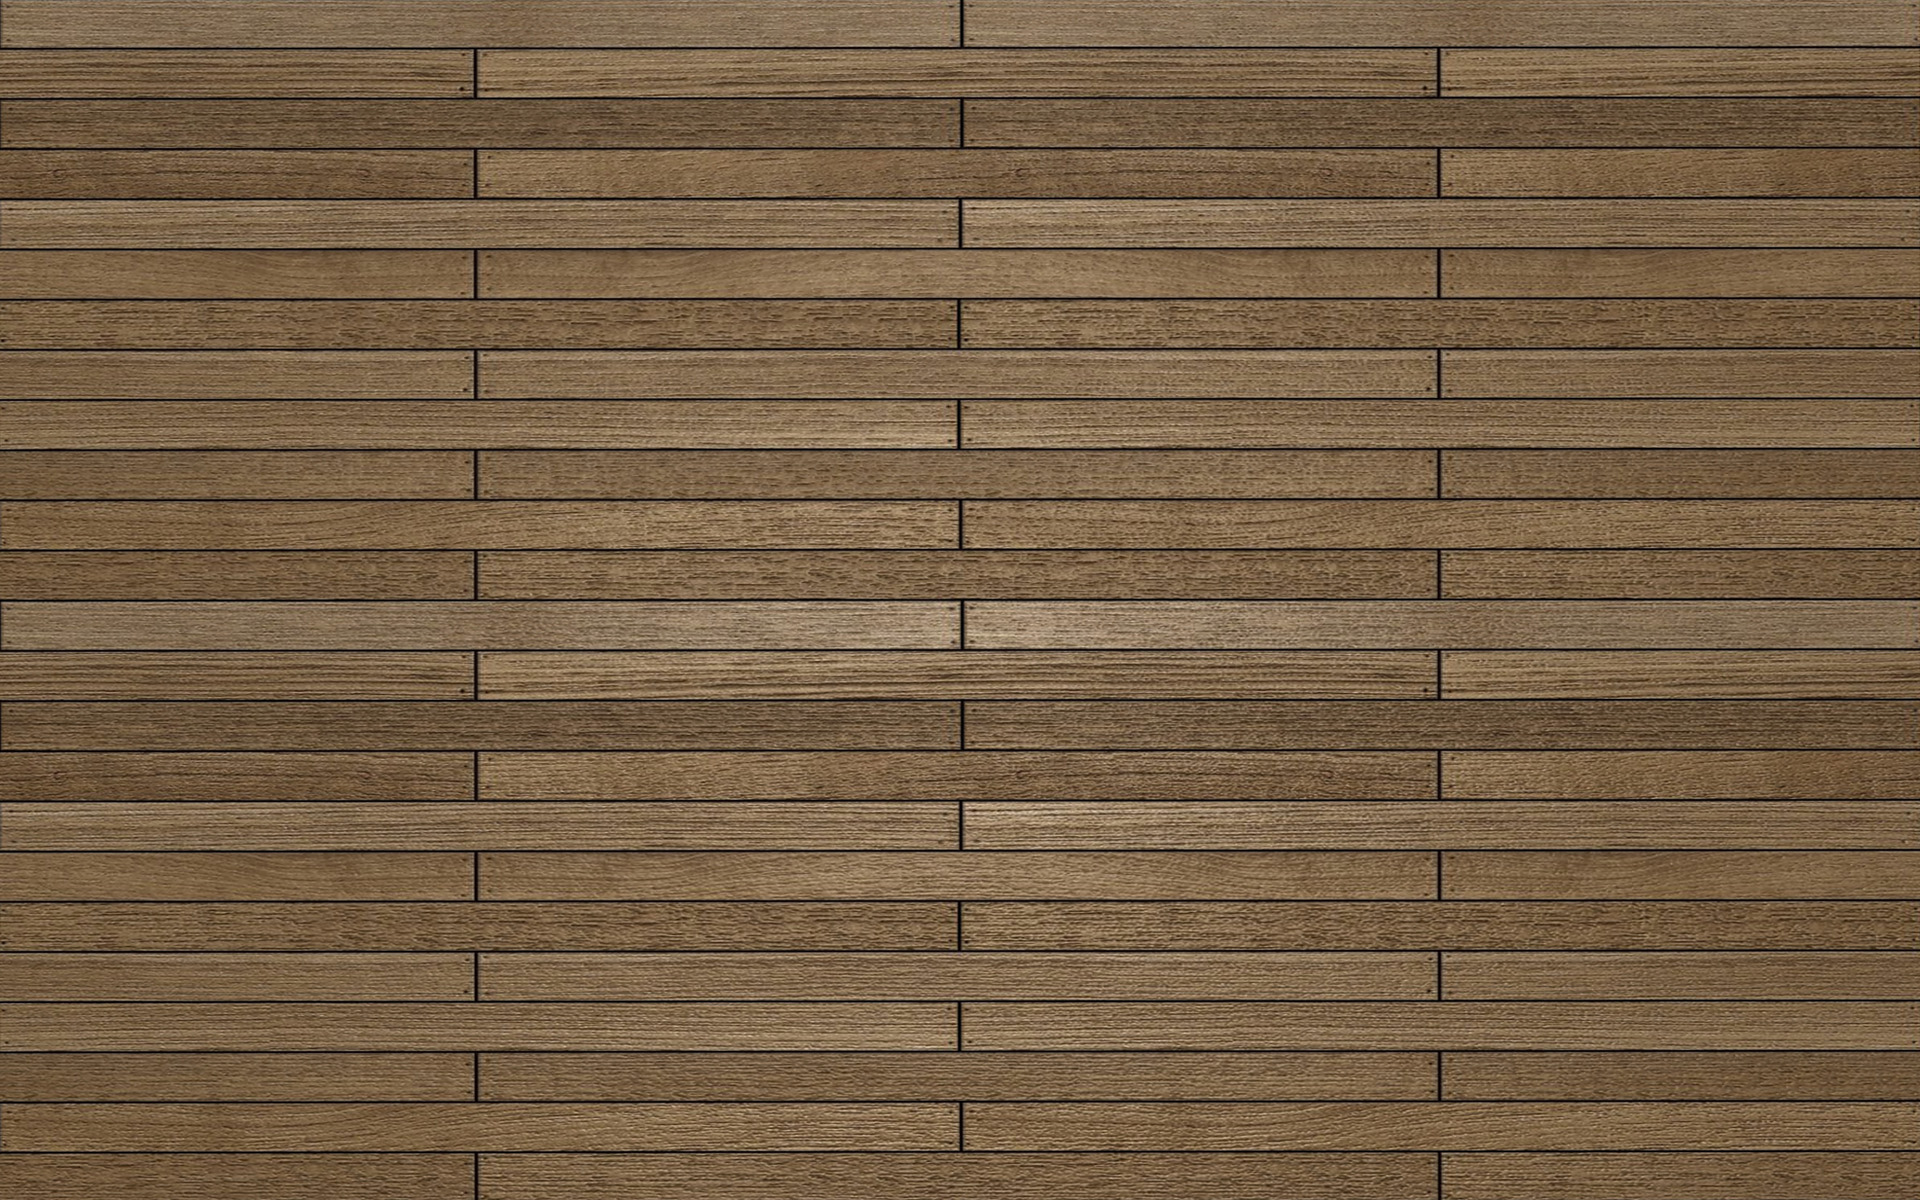 Images of Wooden Floor | 1920x1200